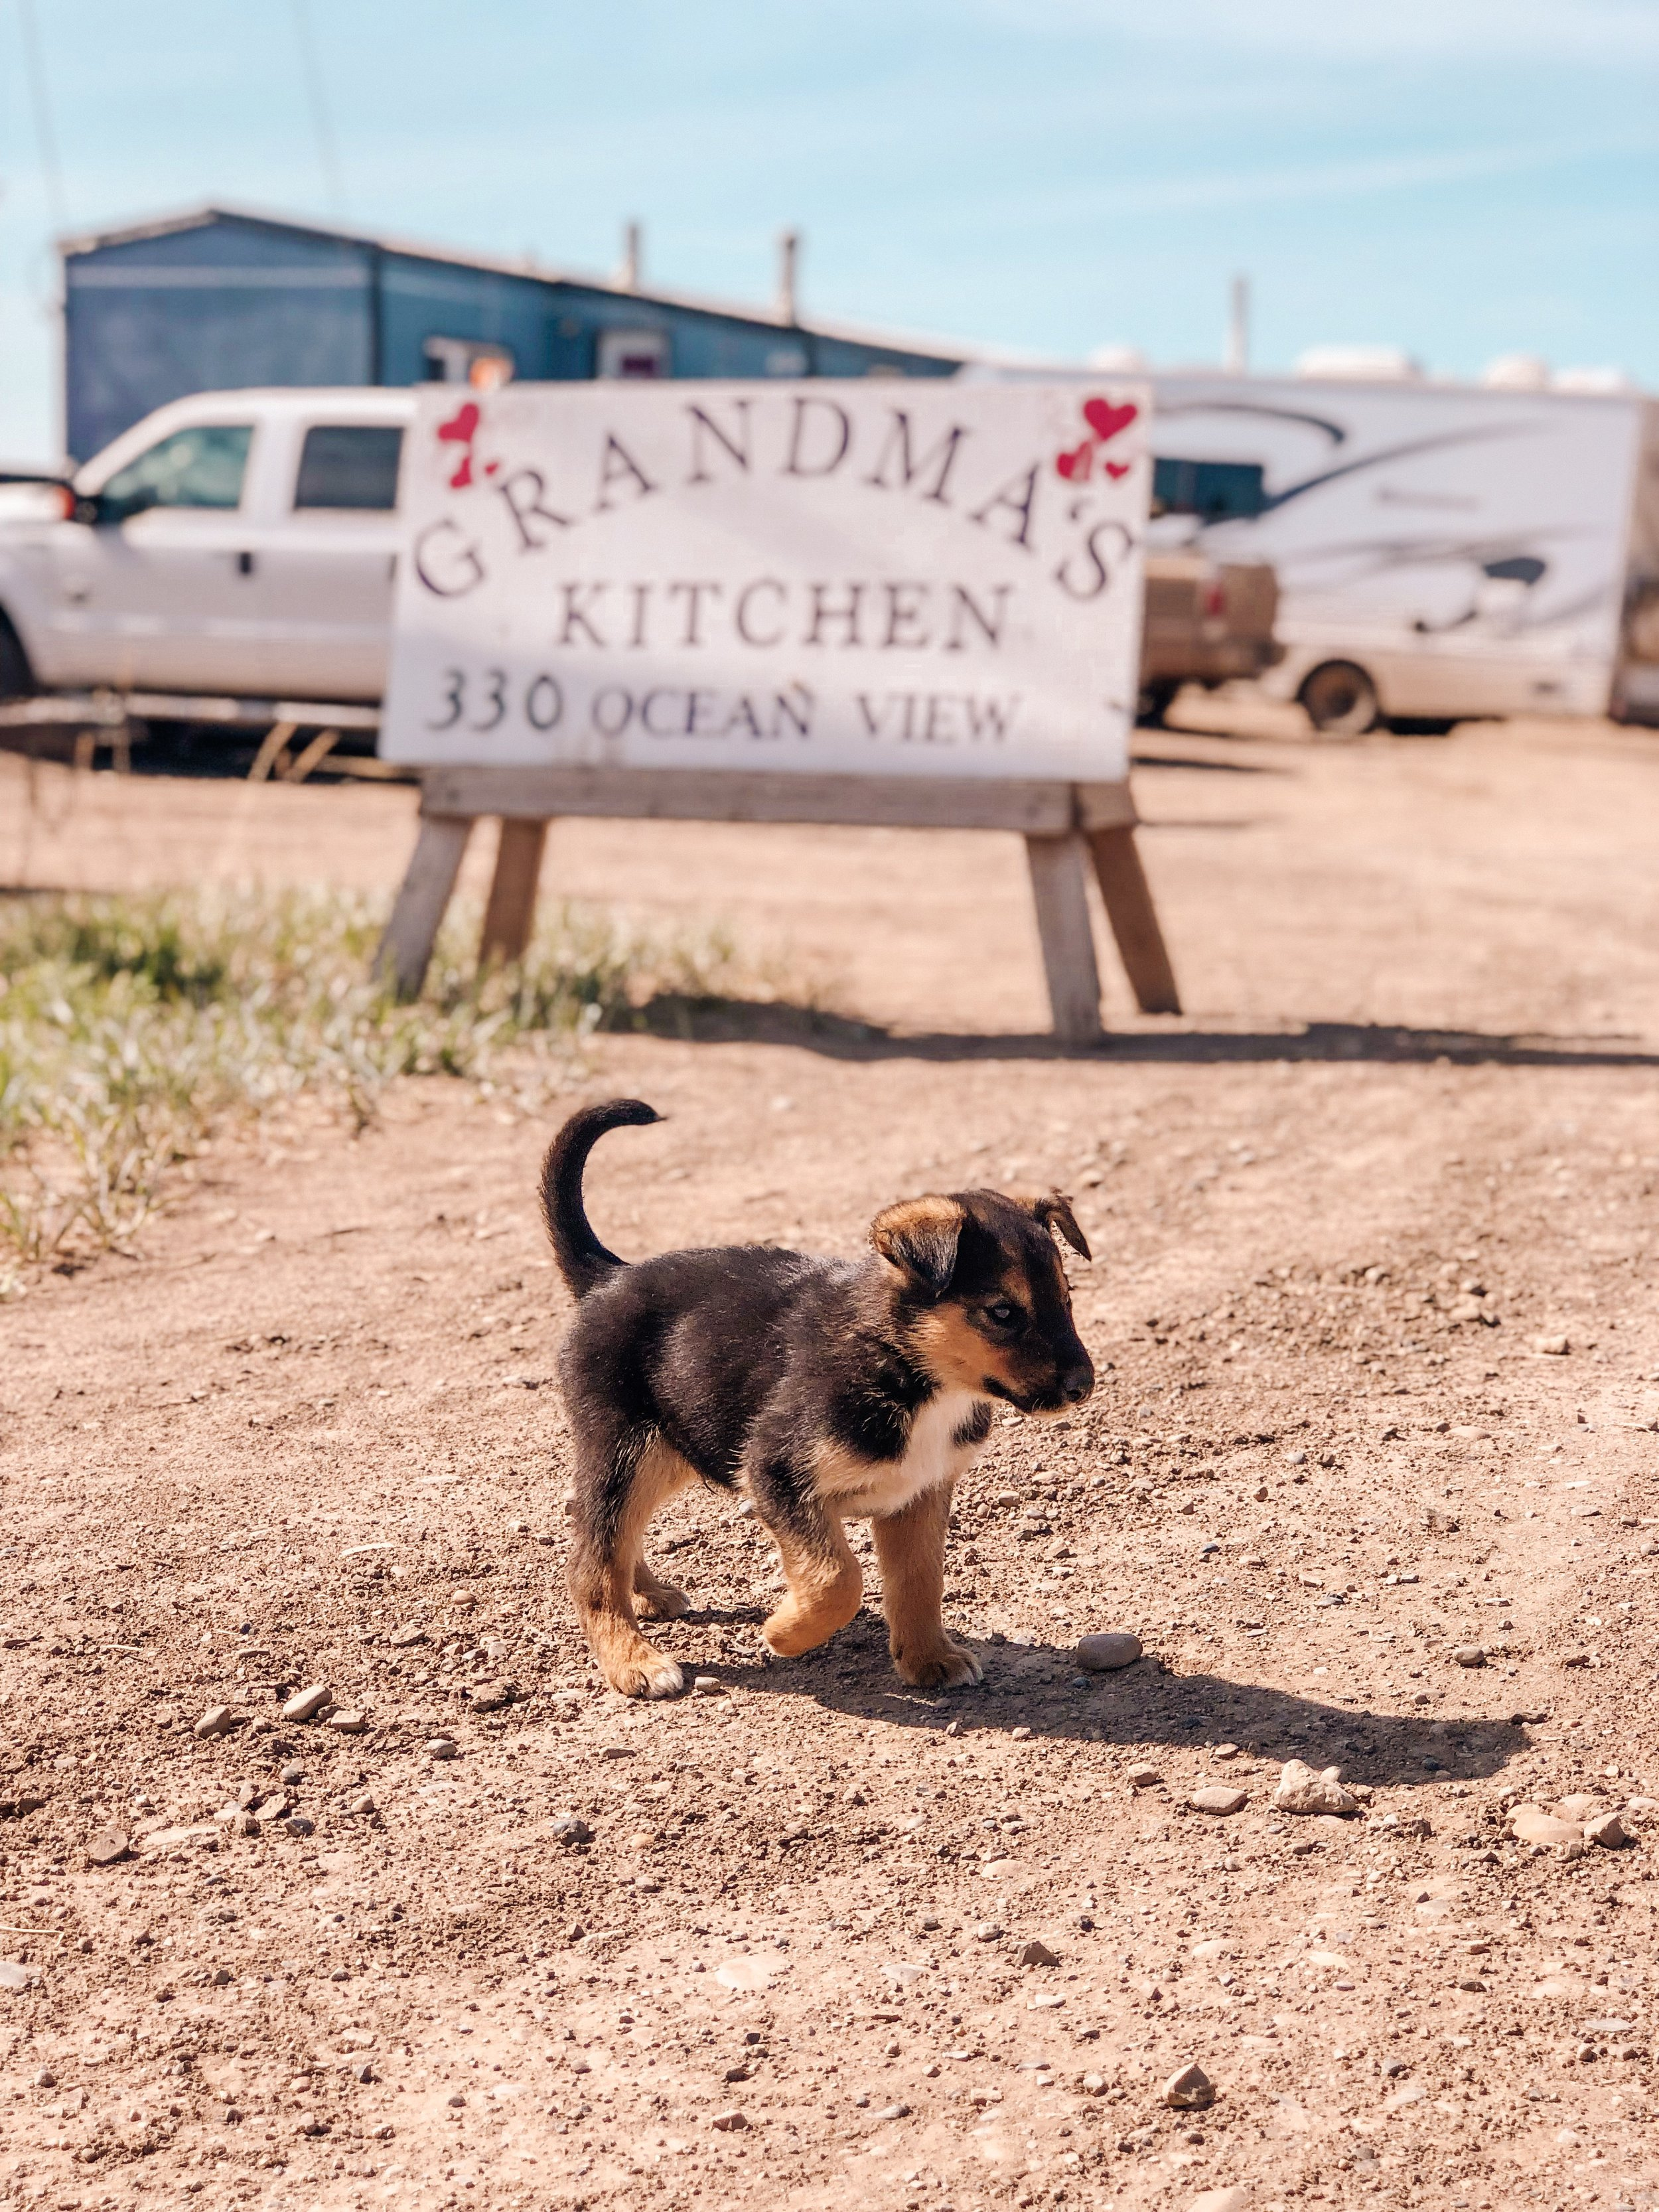 Cute husky sled dog puppies in Tuktoyaktuk Northwest Territories in Canada's arctic